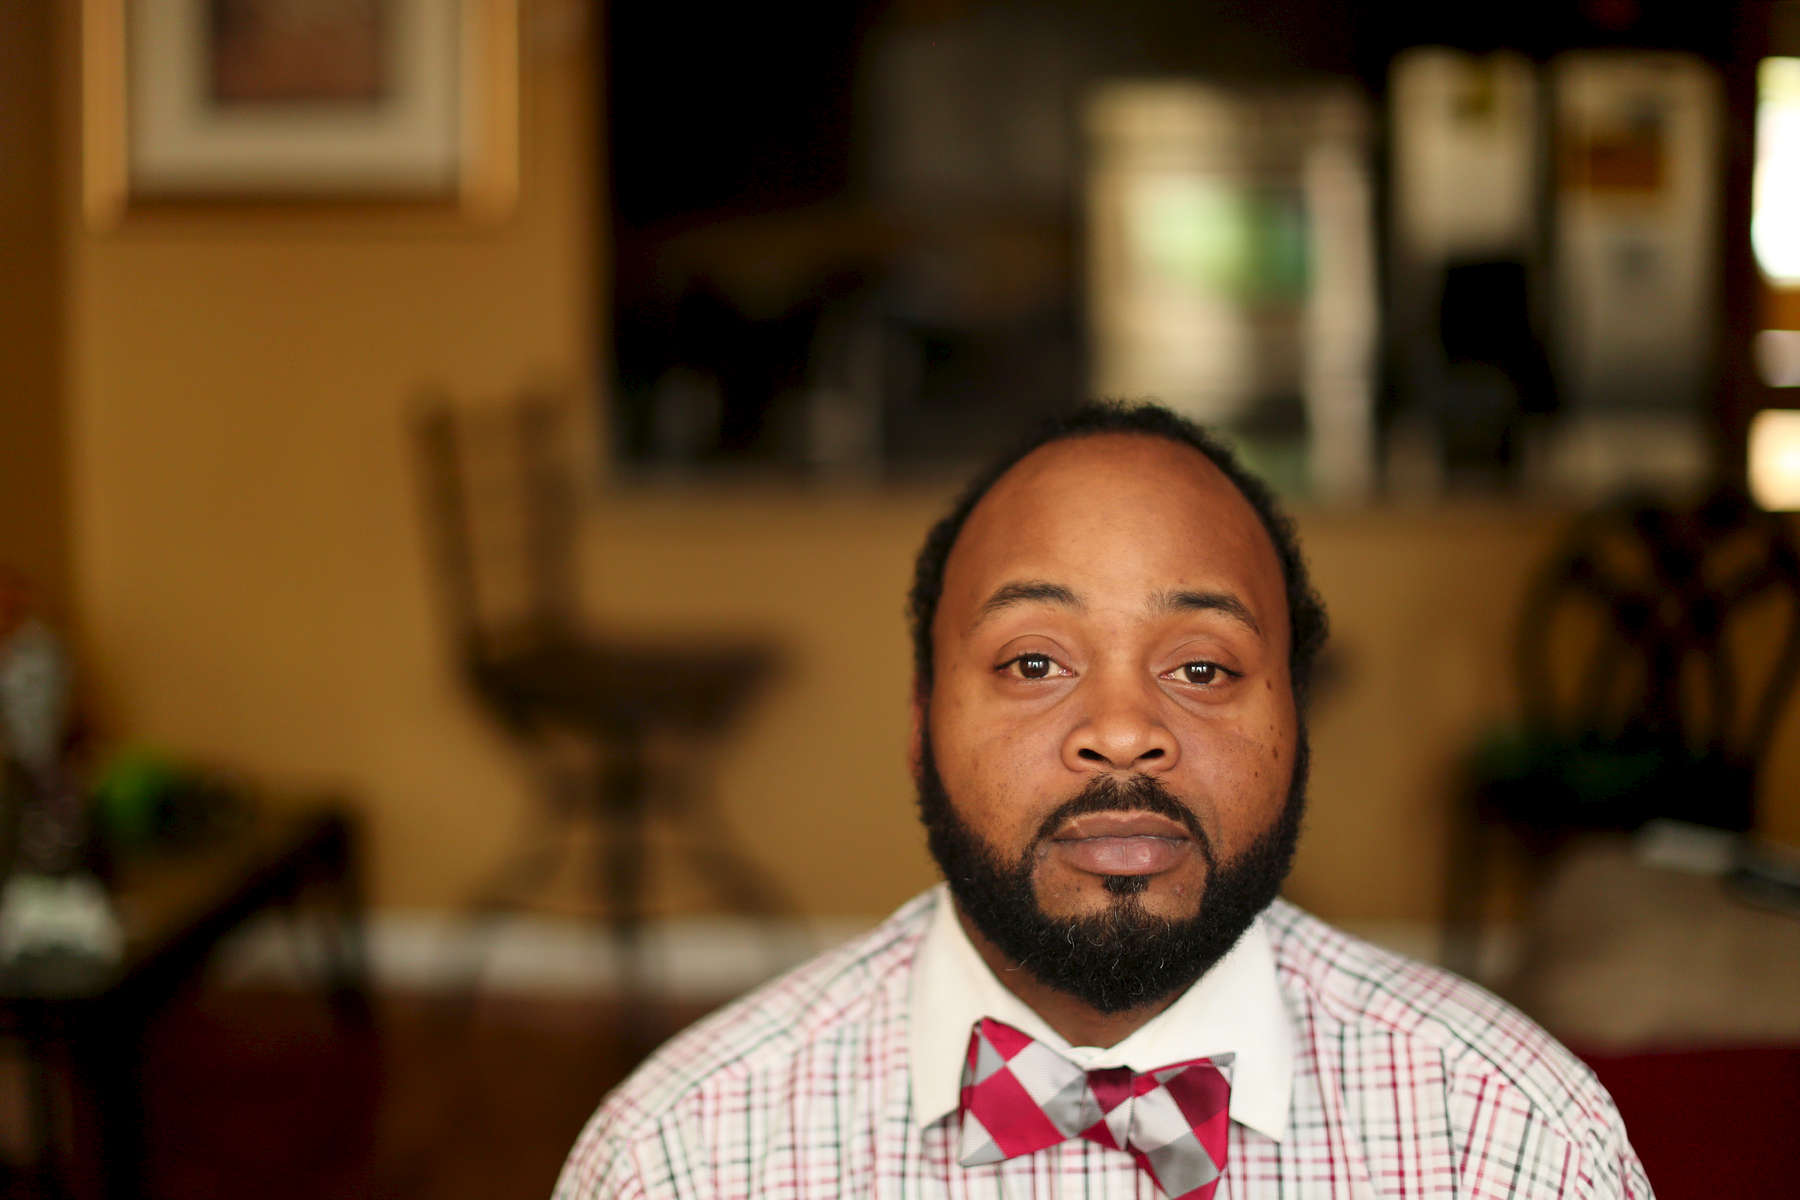 Reginald King, a former staff member at Lawrence Hall Youth Services in Chicago, said he witnessed a program set up to breed criminal behavior.